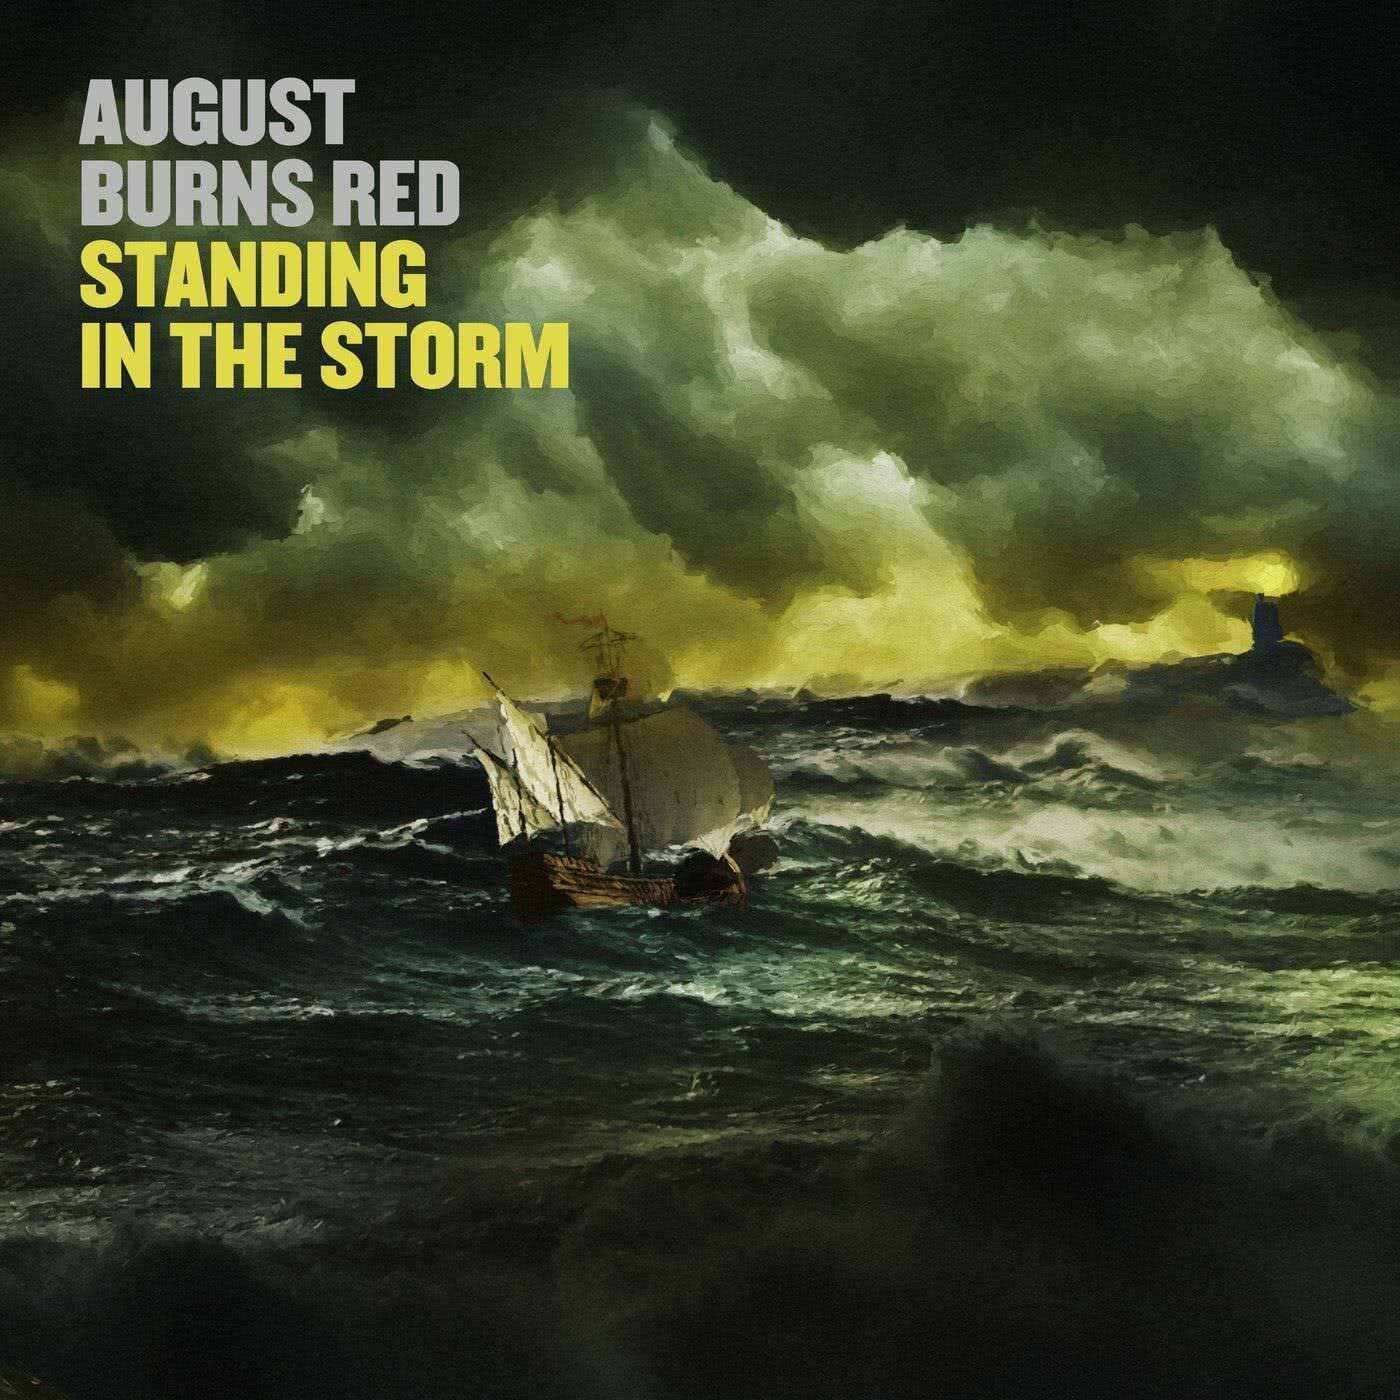 August Burns Red - Standing In The Storm (Single) (2021) скачать